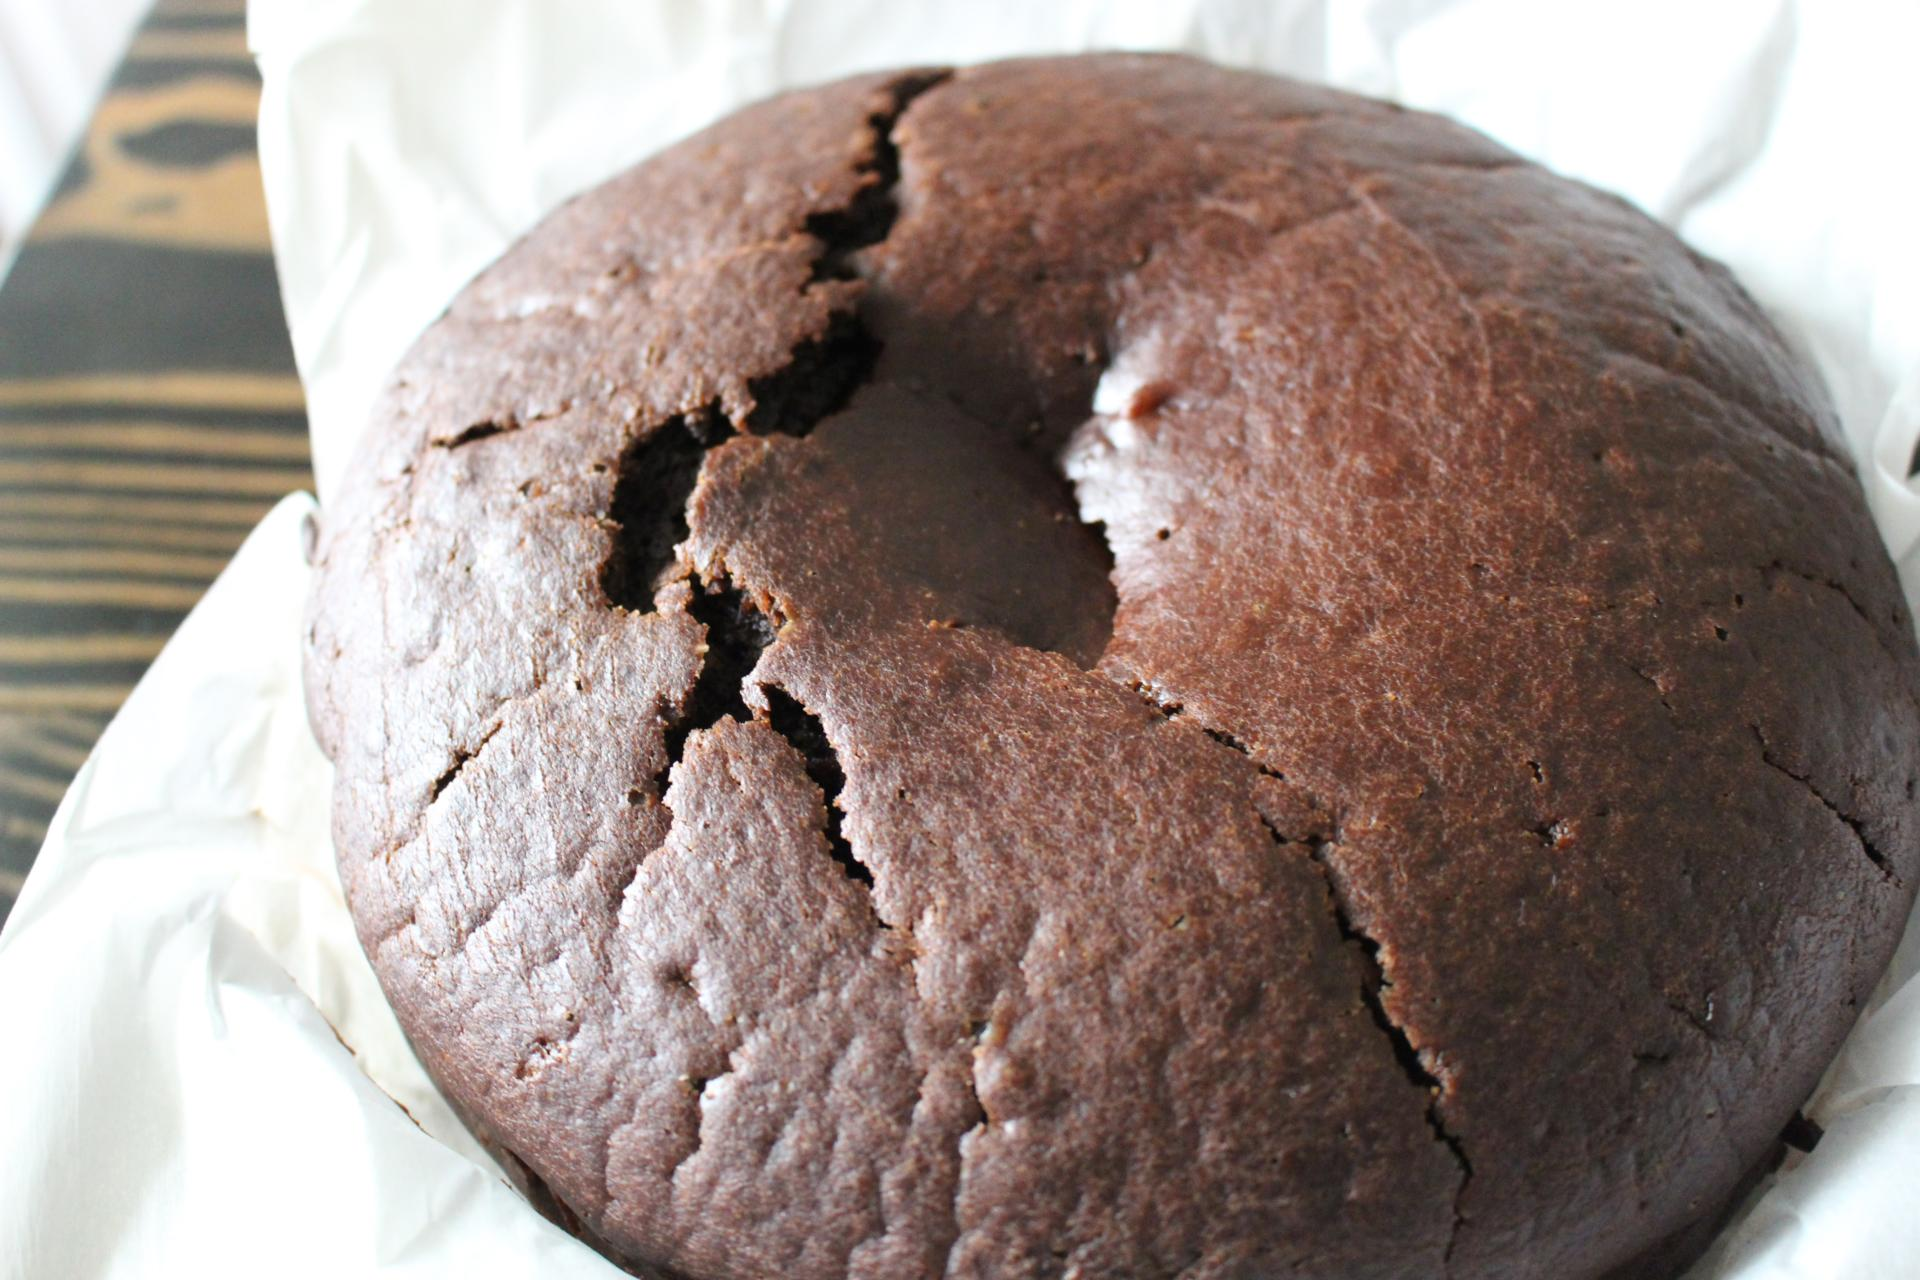 BAKE ME: Chocolate Olive Oil Cake by New Jersey foodie blogger What's For Dinner Esq.